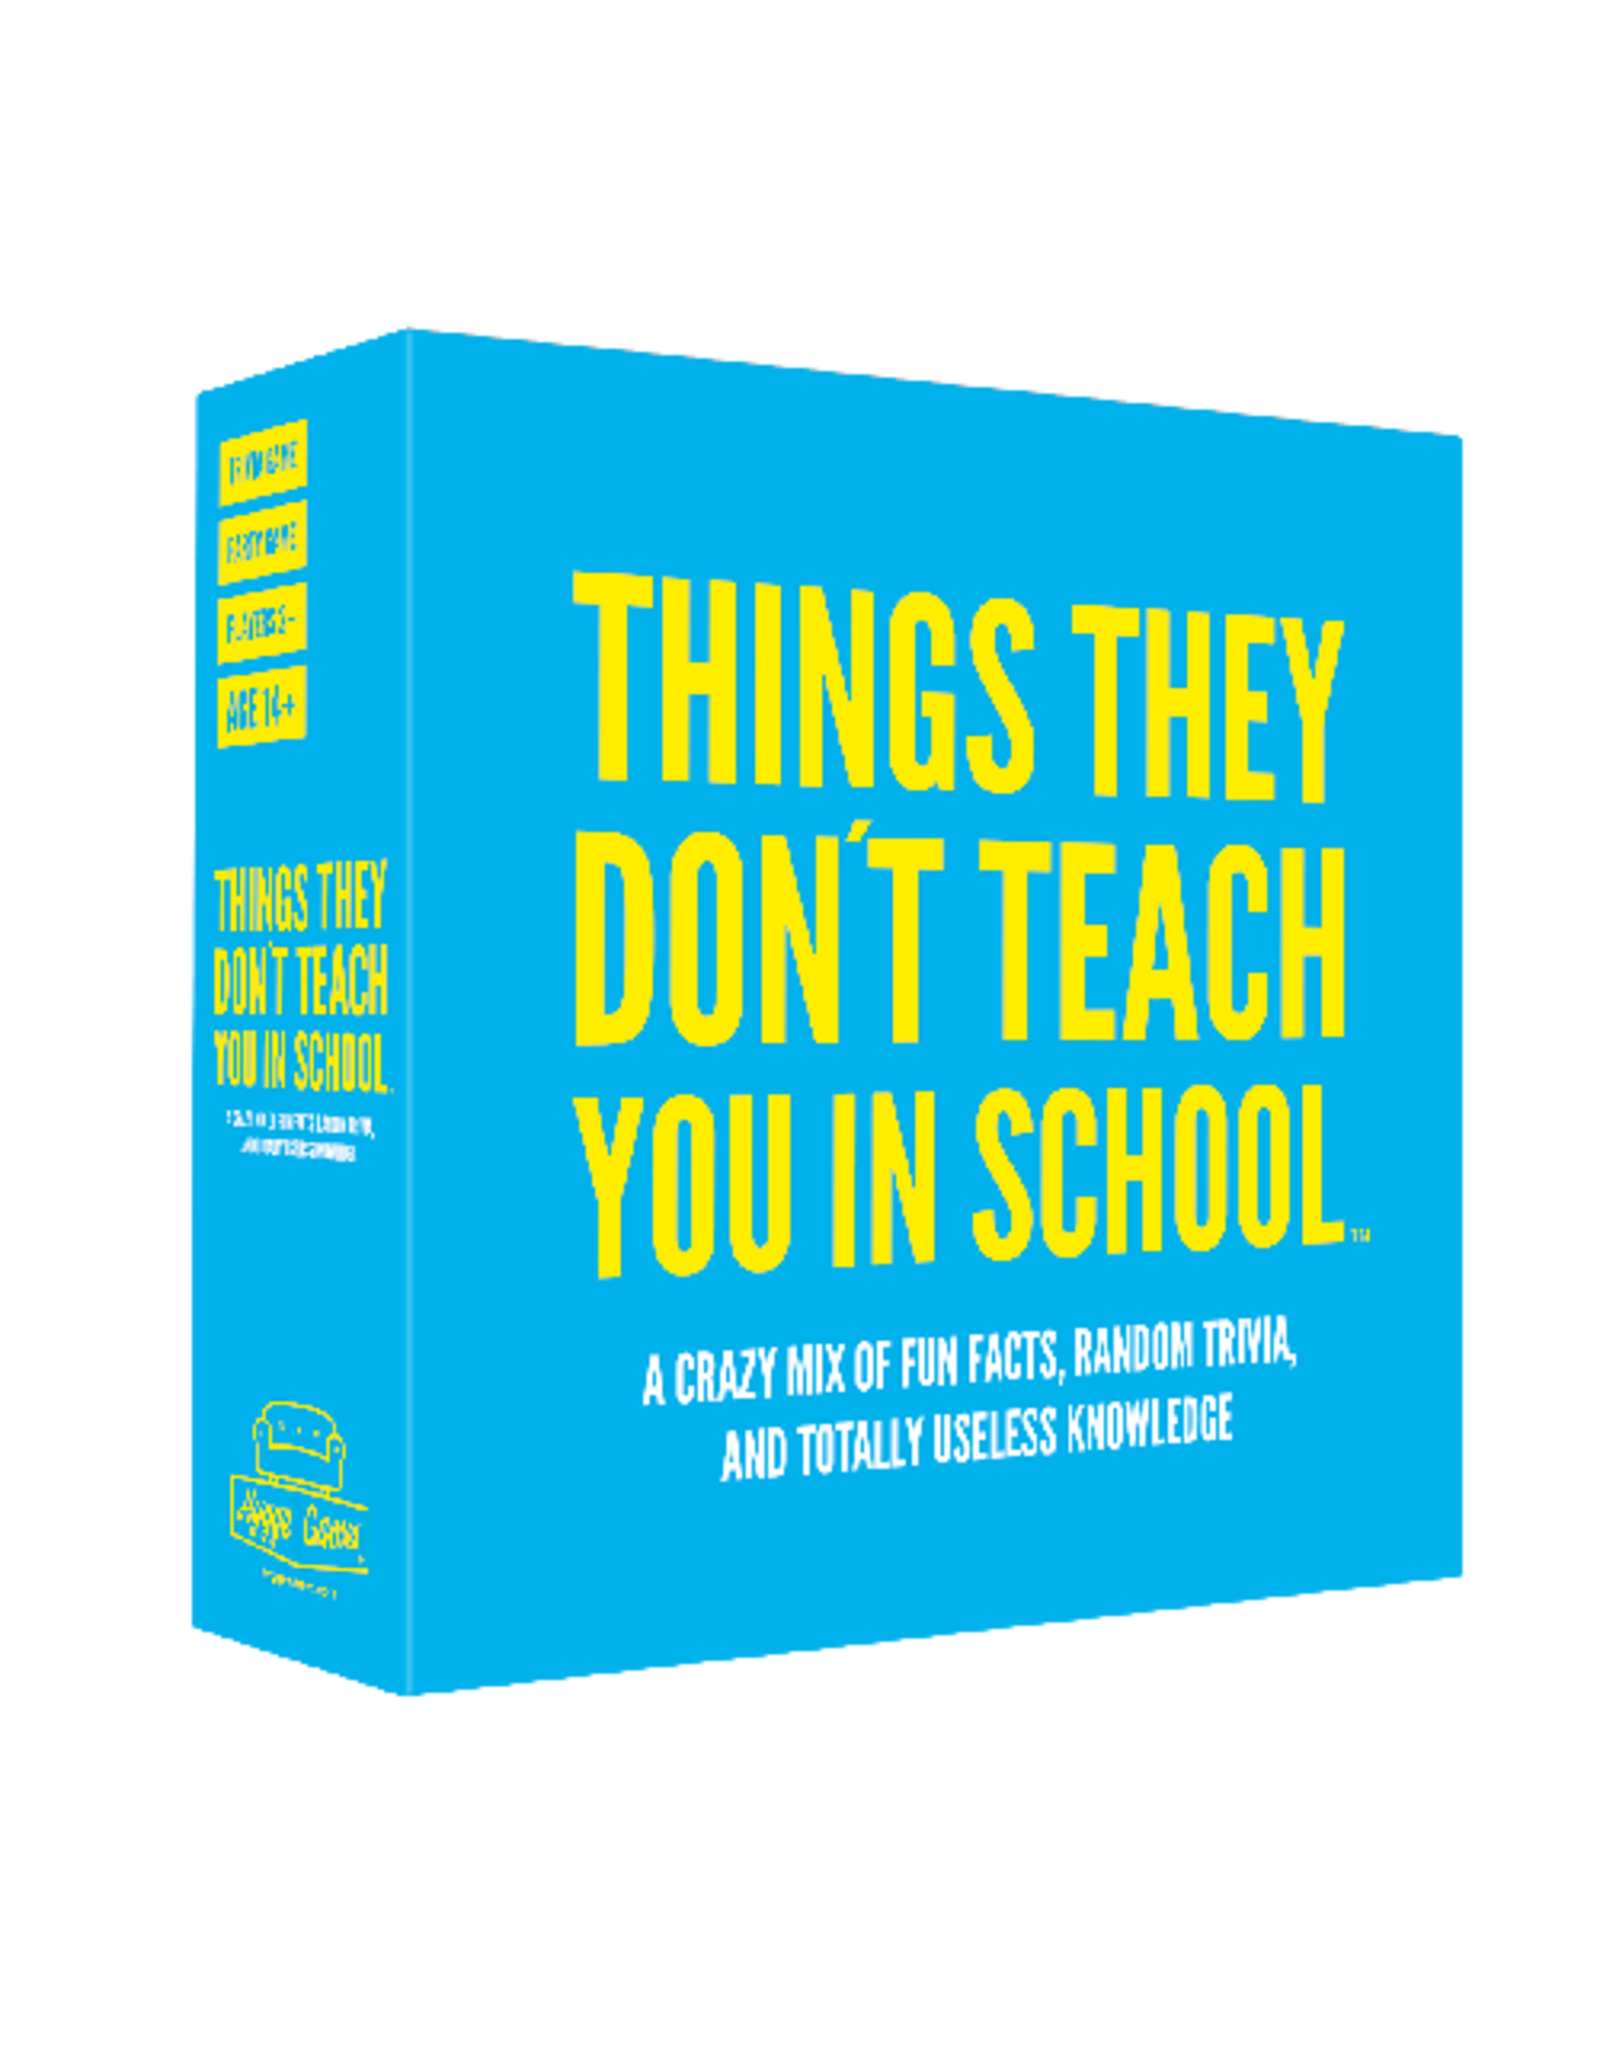 Things They Don't Teach You In School